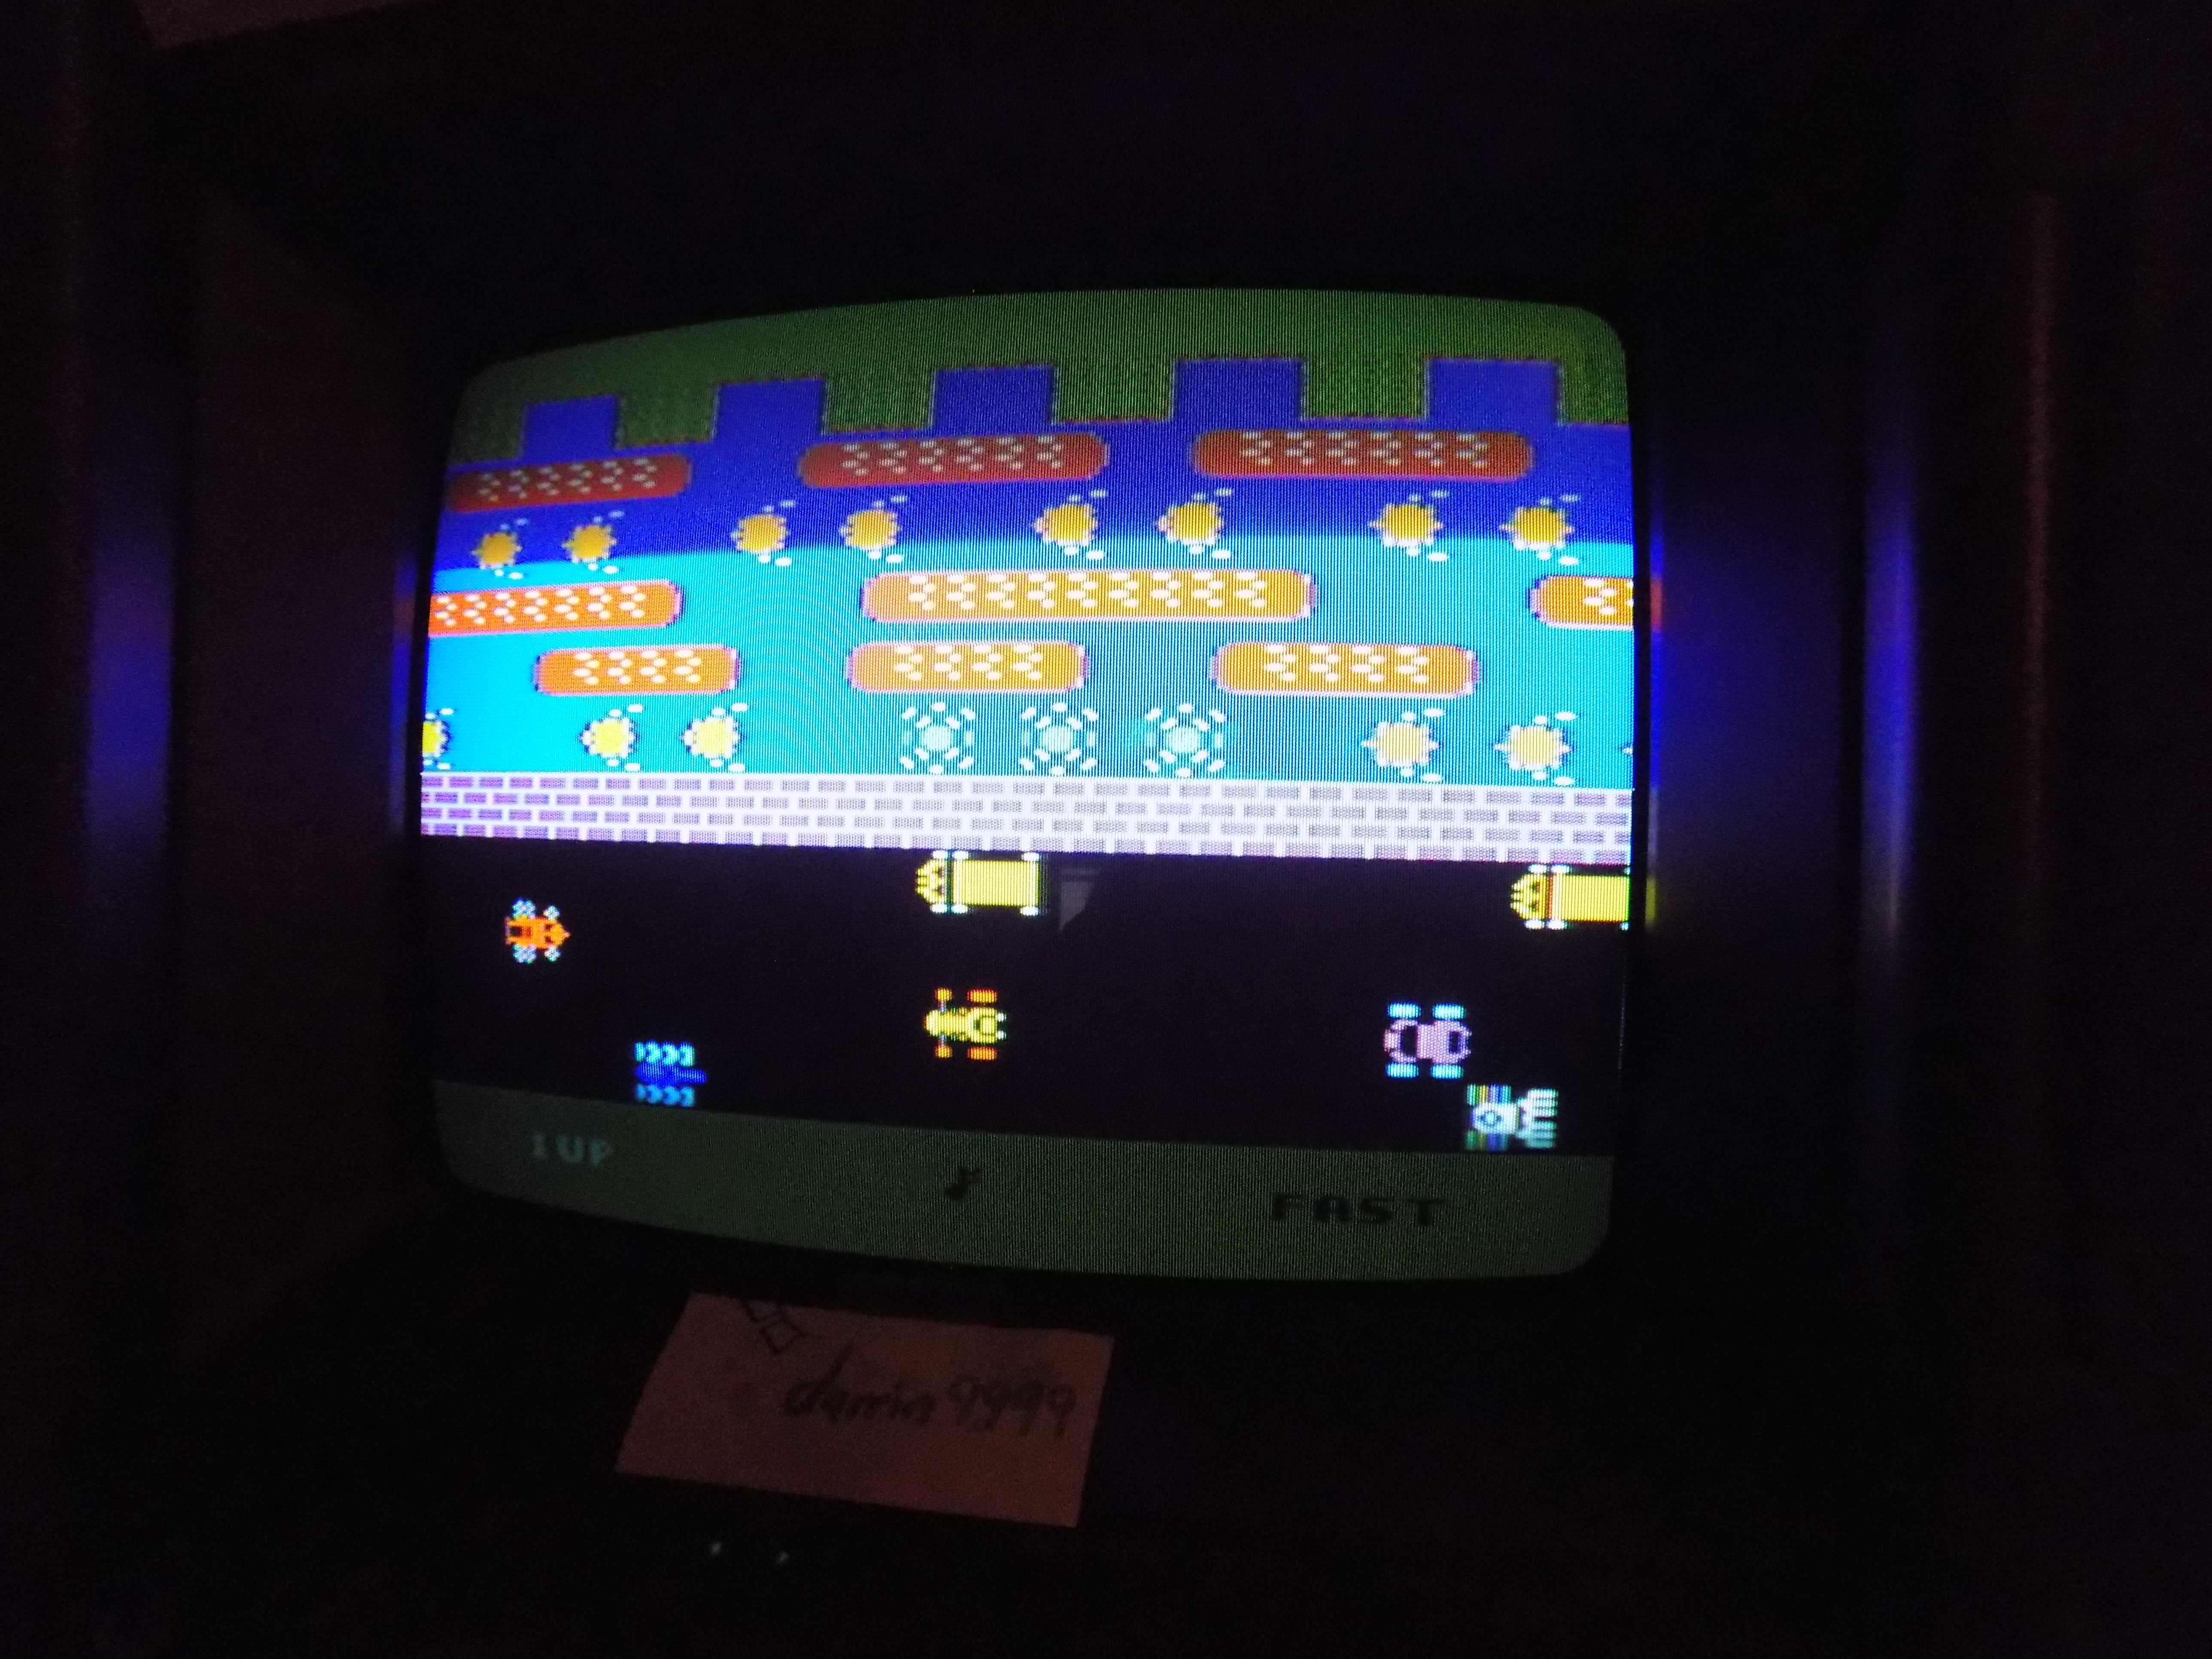 darrin9999: Frogger [Fast] (Colecovision) 12,540 points on 2017-01-17 22:56:31